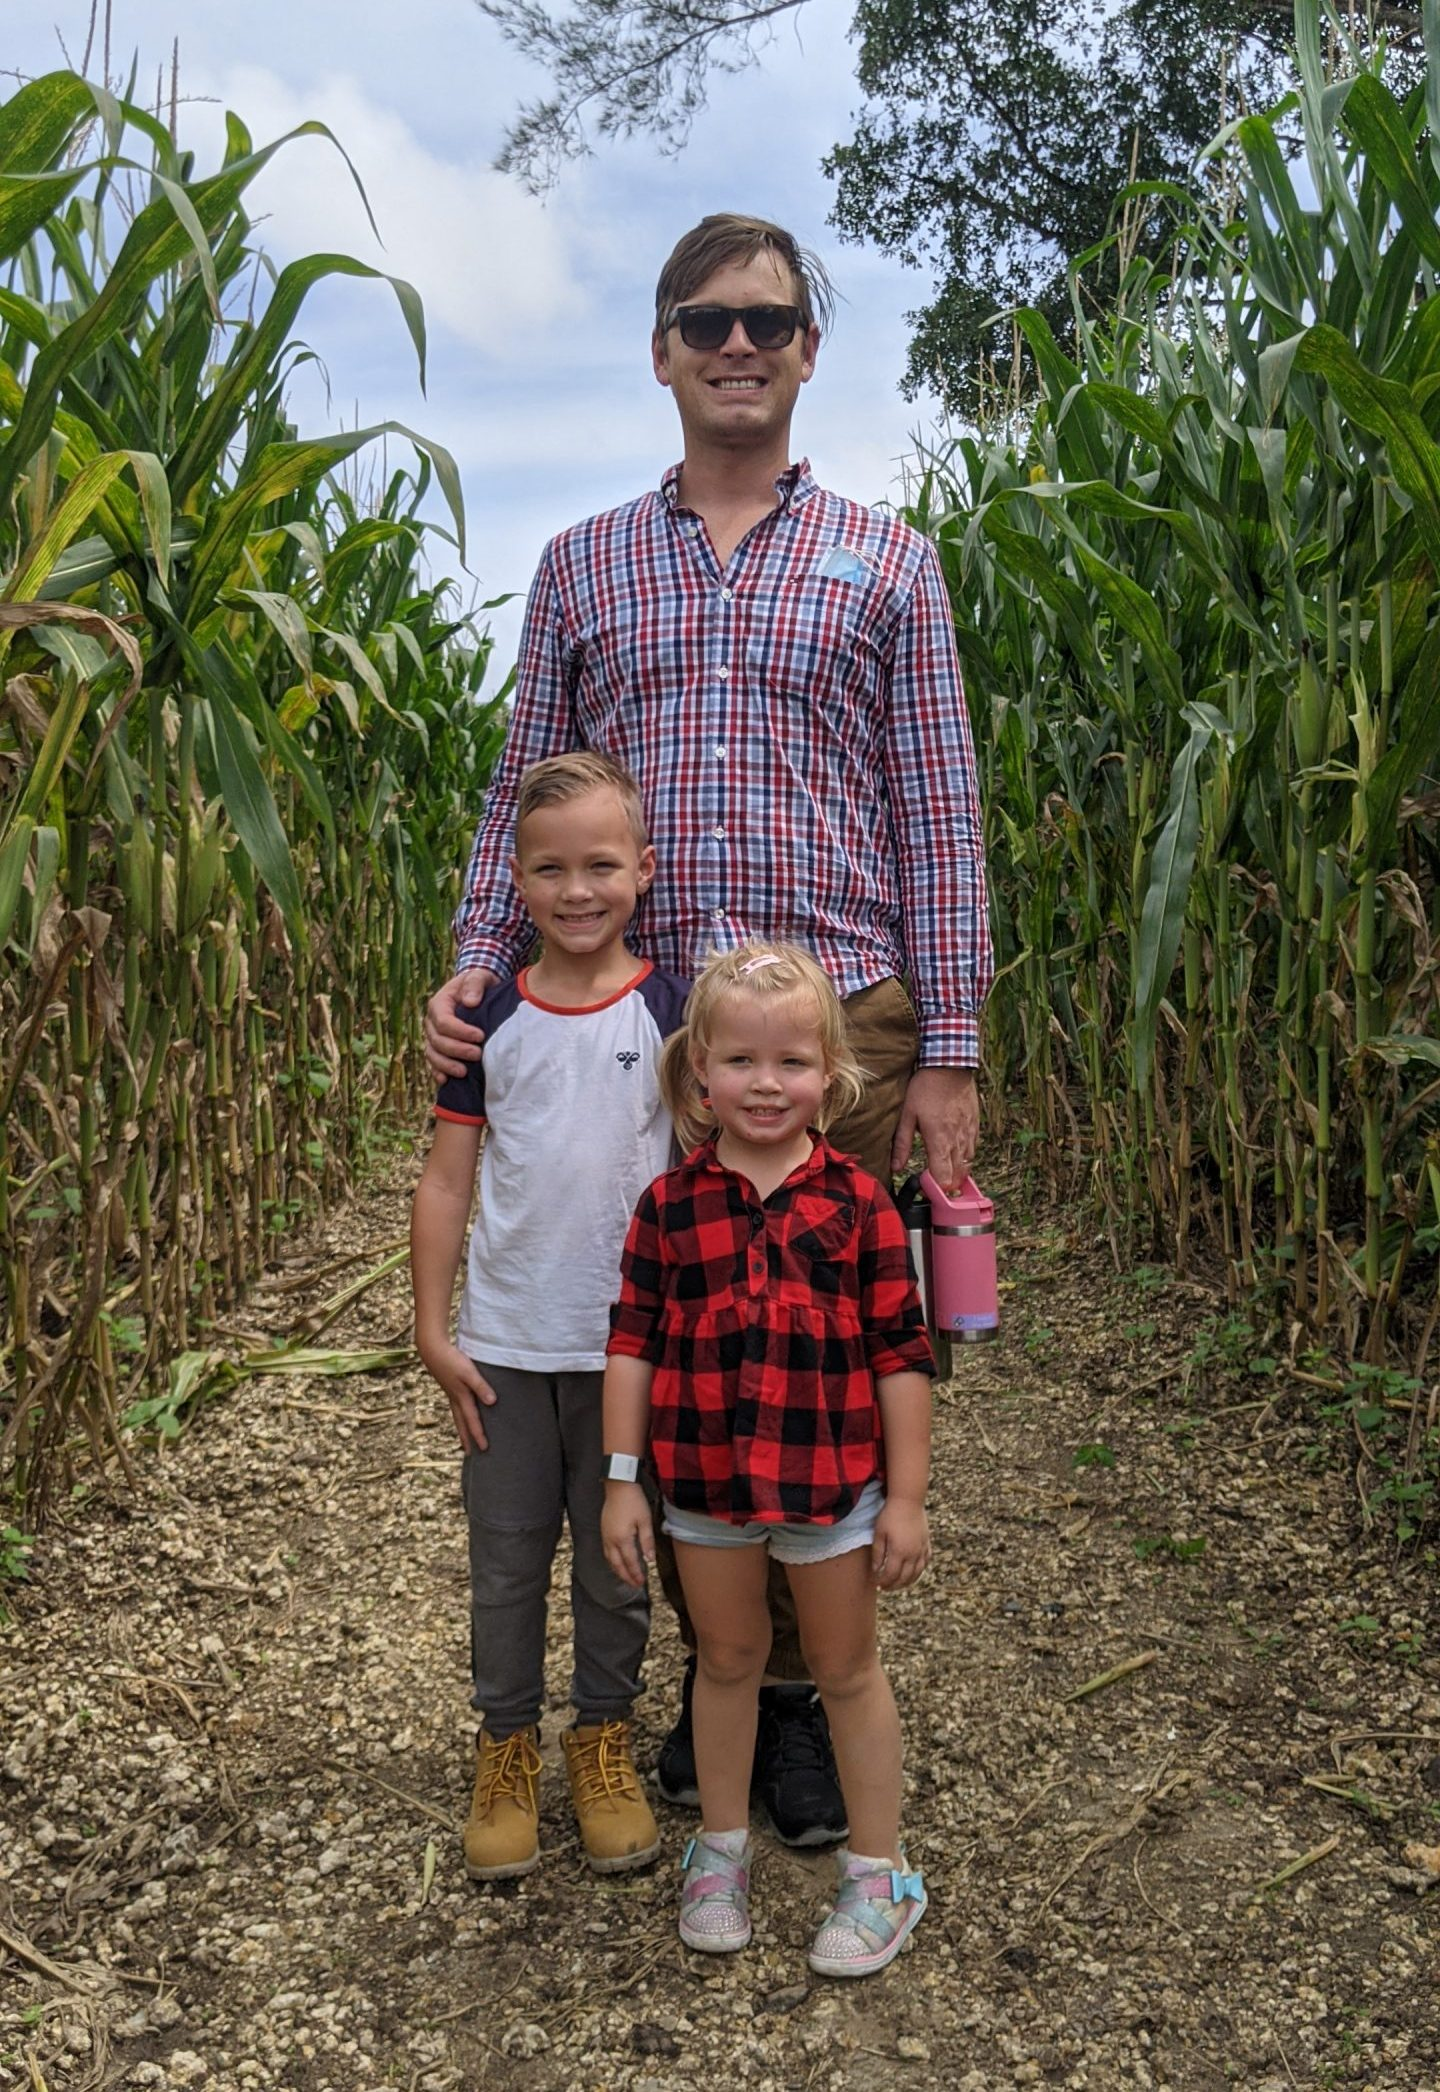 Rachel's husband and their children (Happy Father's Day: Never Forget How Amazing You Are! Rachel Hulsund Contributor Miami Mom Collective)